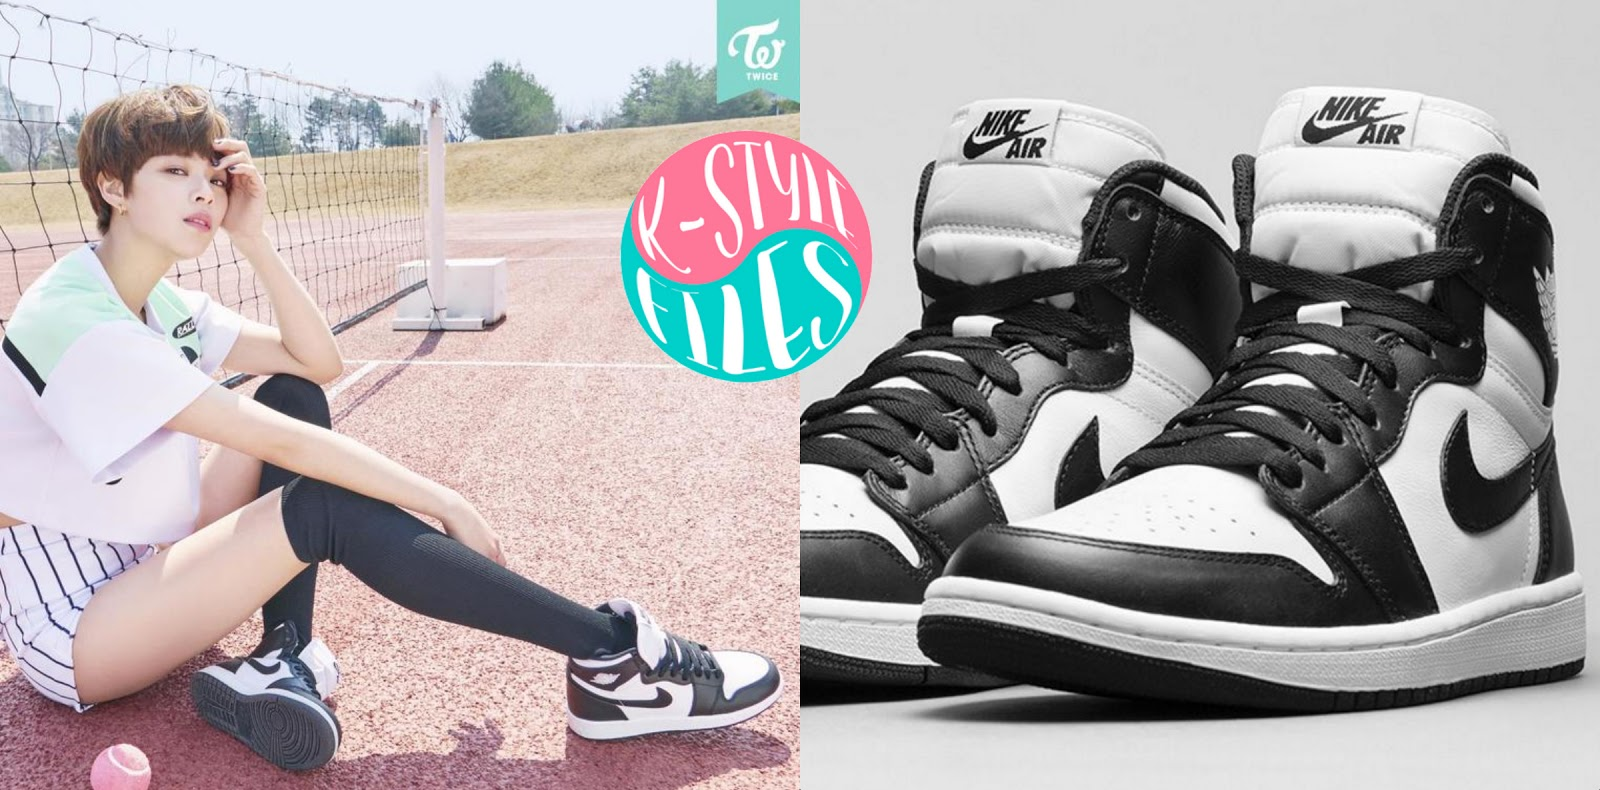 Jeongyeon is wearing the Air Jordan 1 Retro High OGs from Nike